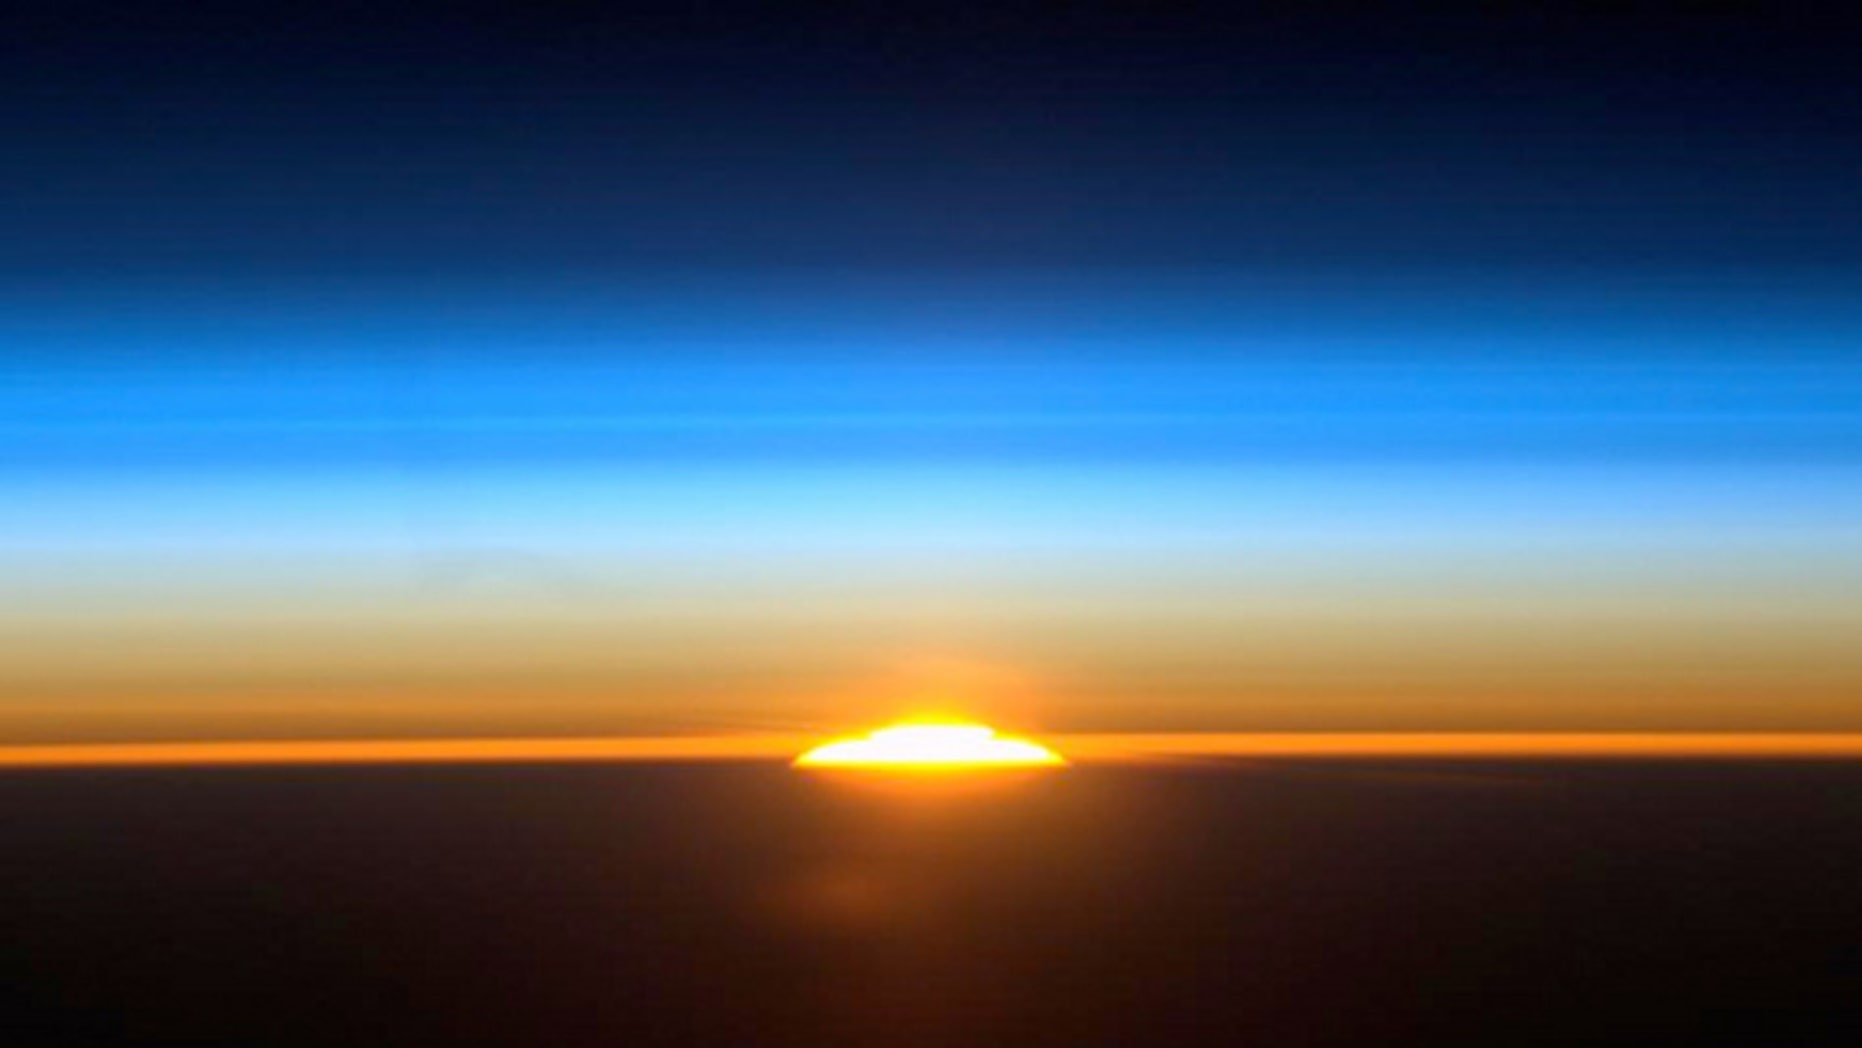 Nickel-eating bacteria may have worsened the mass die-off some 250 million years ago, scientists suggest. (Shown here, International Space Station astronaut Ron Garan captures one of the 16 sunrises they see each day, on Aug. 27, 2011.)